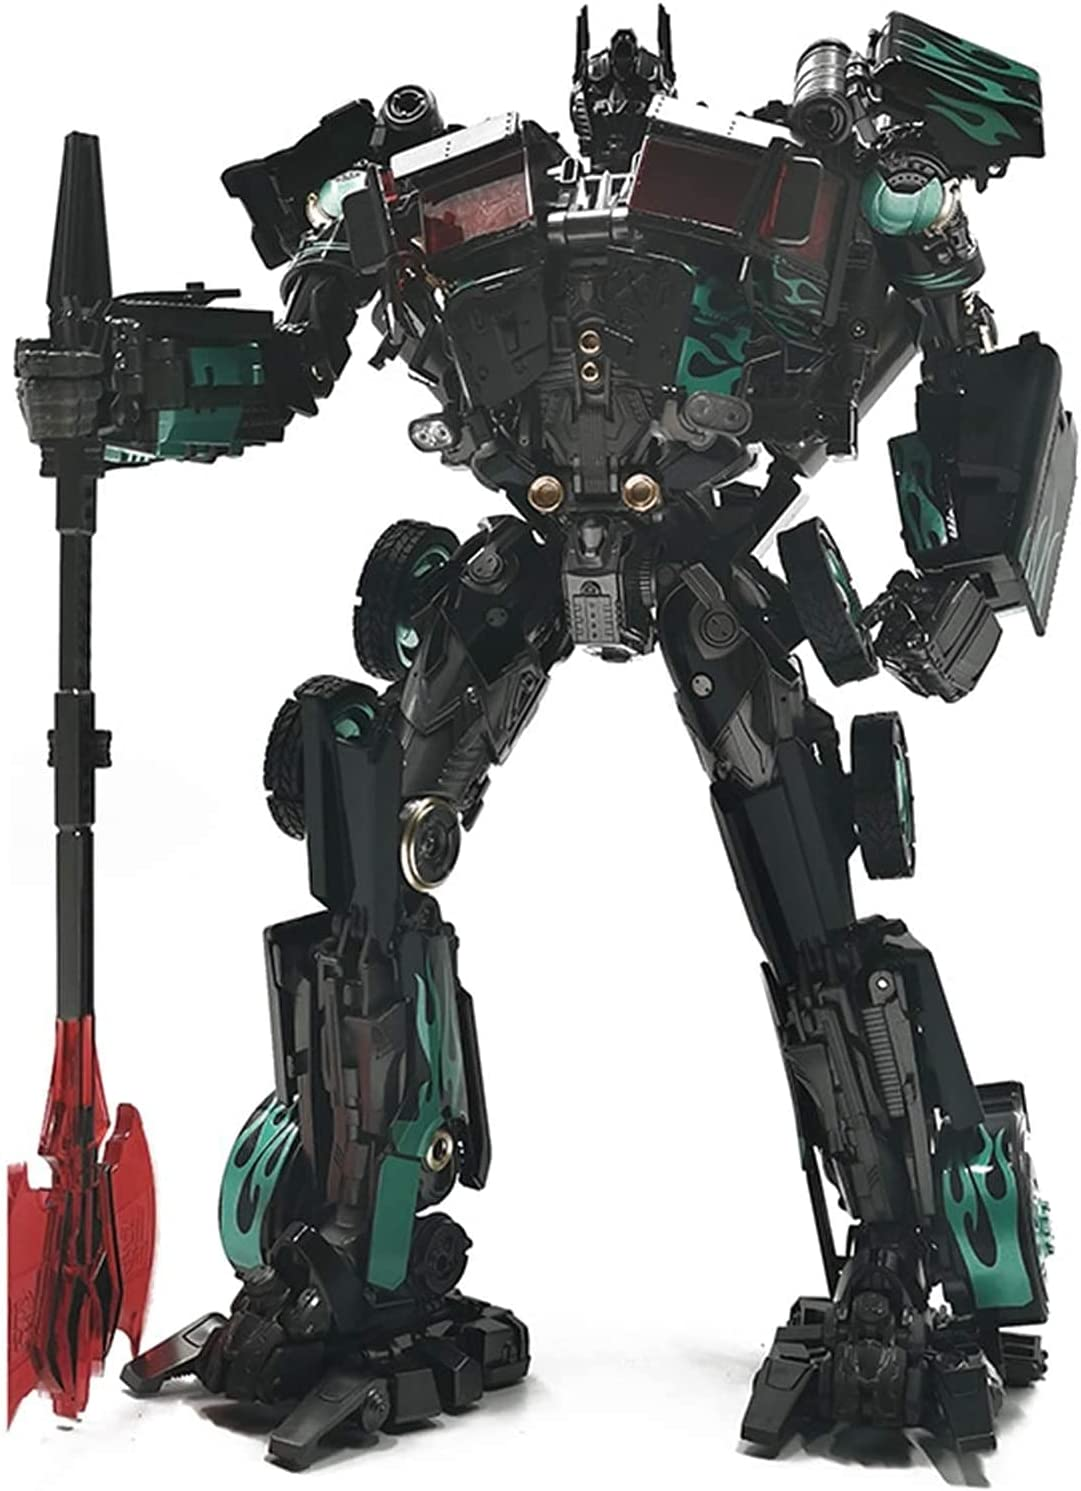 RSVPhandcrafted Transformer Toys Black Mamba Ki Over item handling Online limited product Deformation Toy